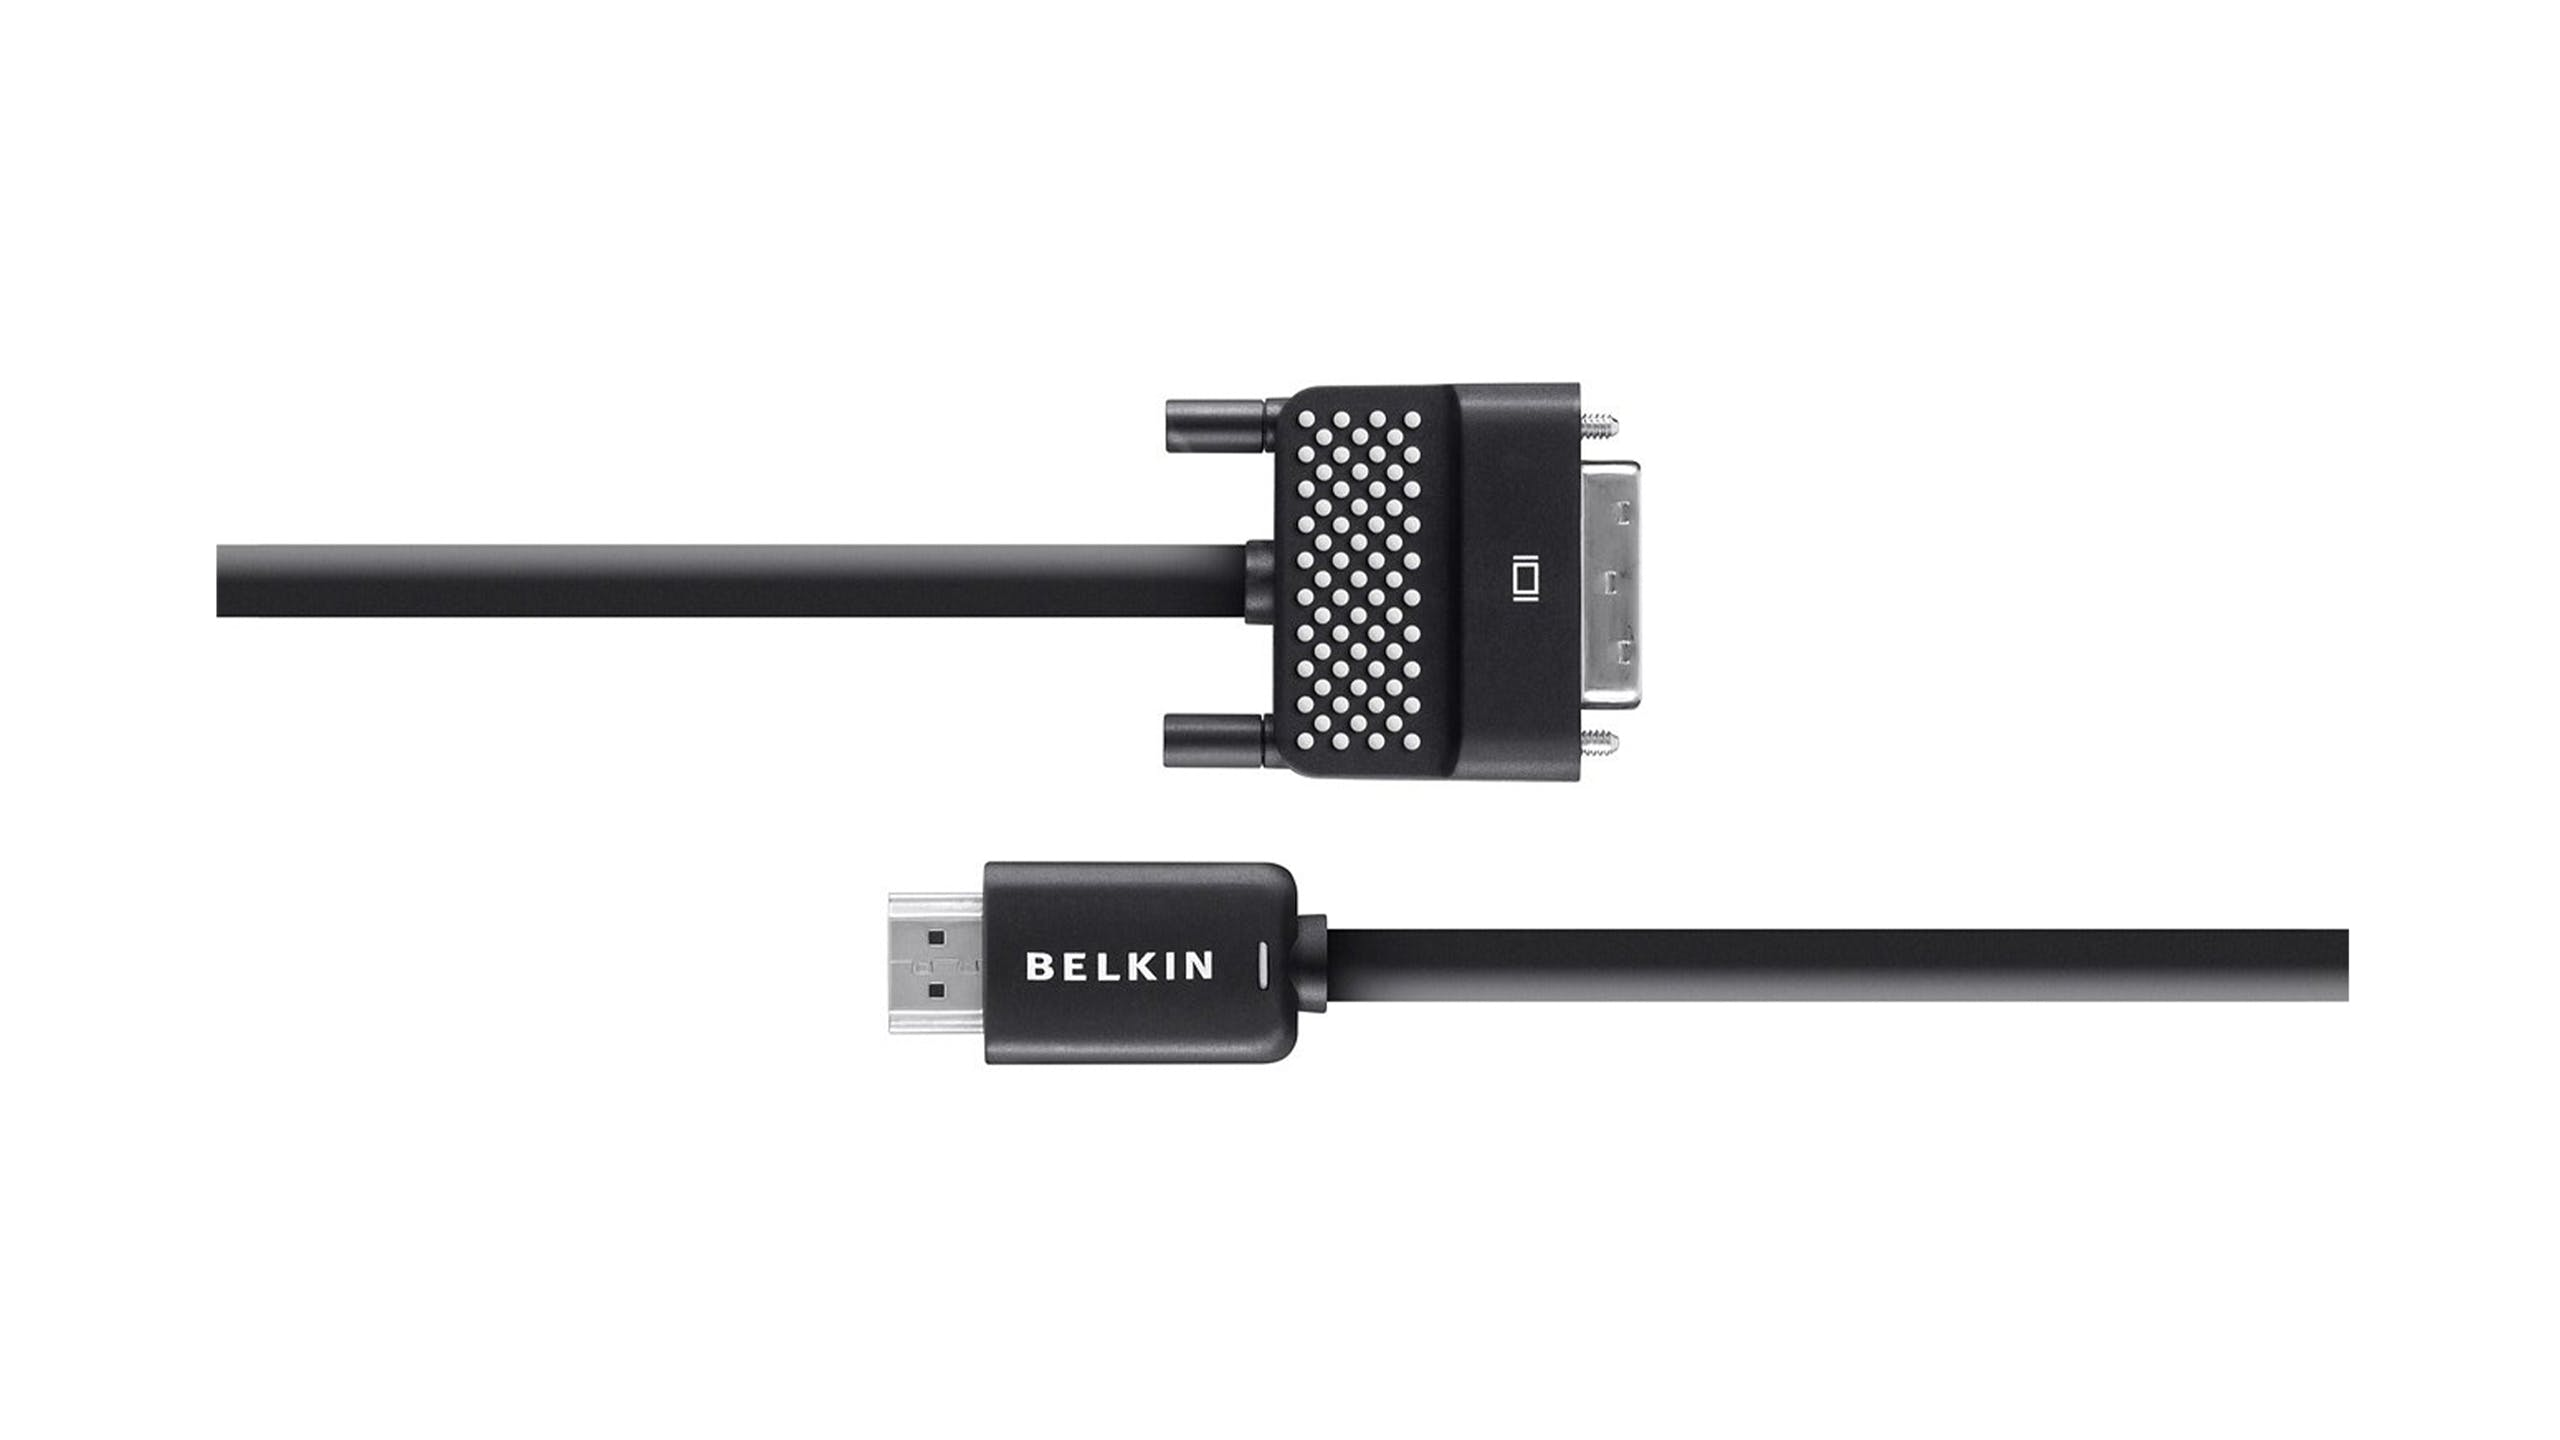 Belkin HDMI to DVI Cable - 3.6m